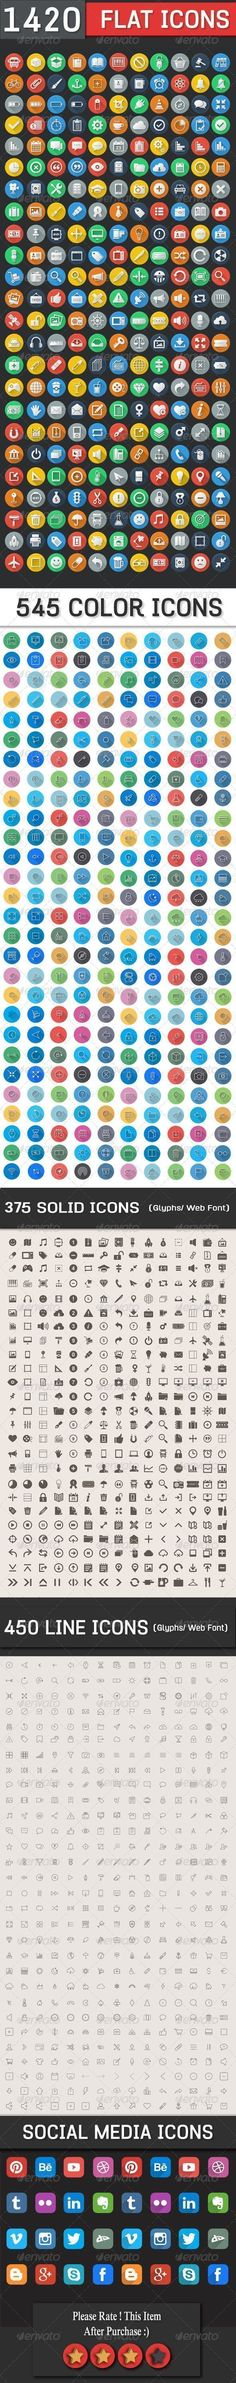 1420 Flat Icons - Colorful Icons Set  app, app development, business, collaborations, colorful, communication, computer, consultancy, cross platform, development, flat icons, glyphs, graphics, icons, idea, interface, internet, line, long shadow, mac, media, mobile marketing, modern, responsive, seo icons, social media, social network, stroke, touch, web #FinanceIcons #internetmarketingseo #mobilemarketingideas